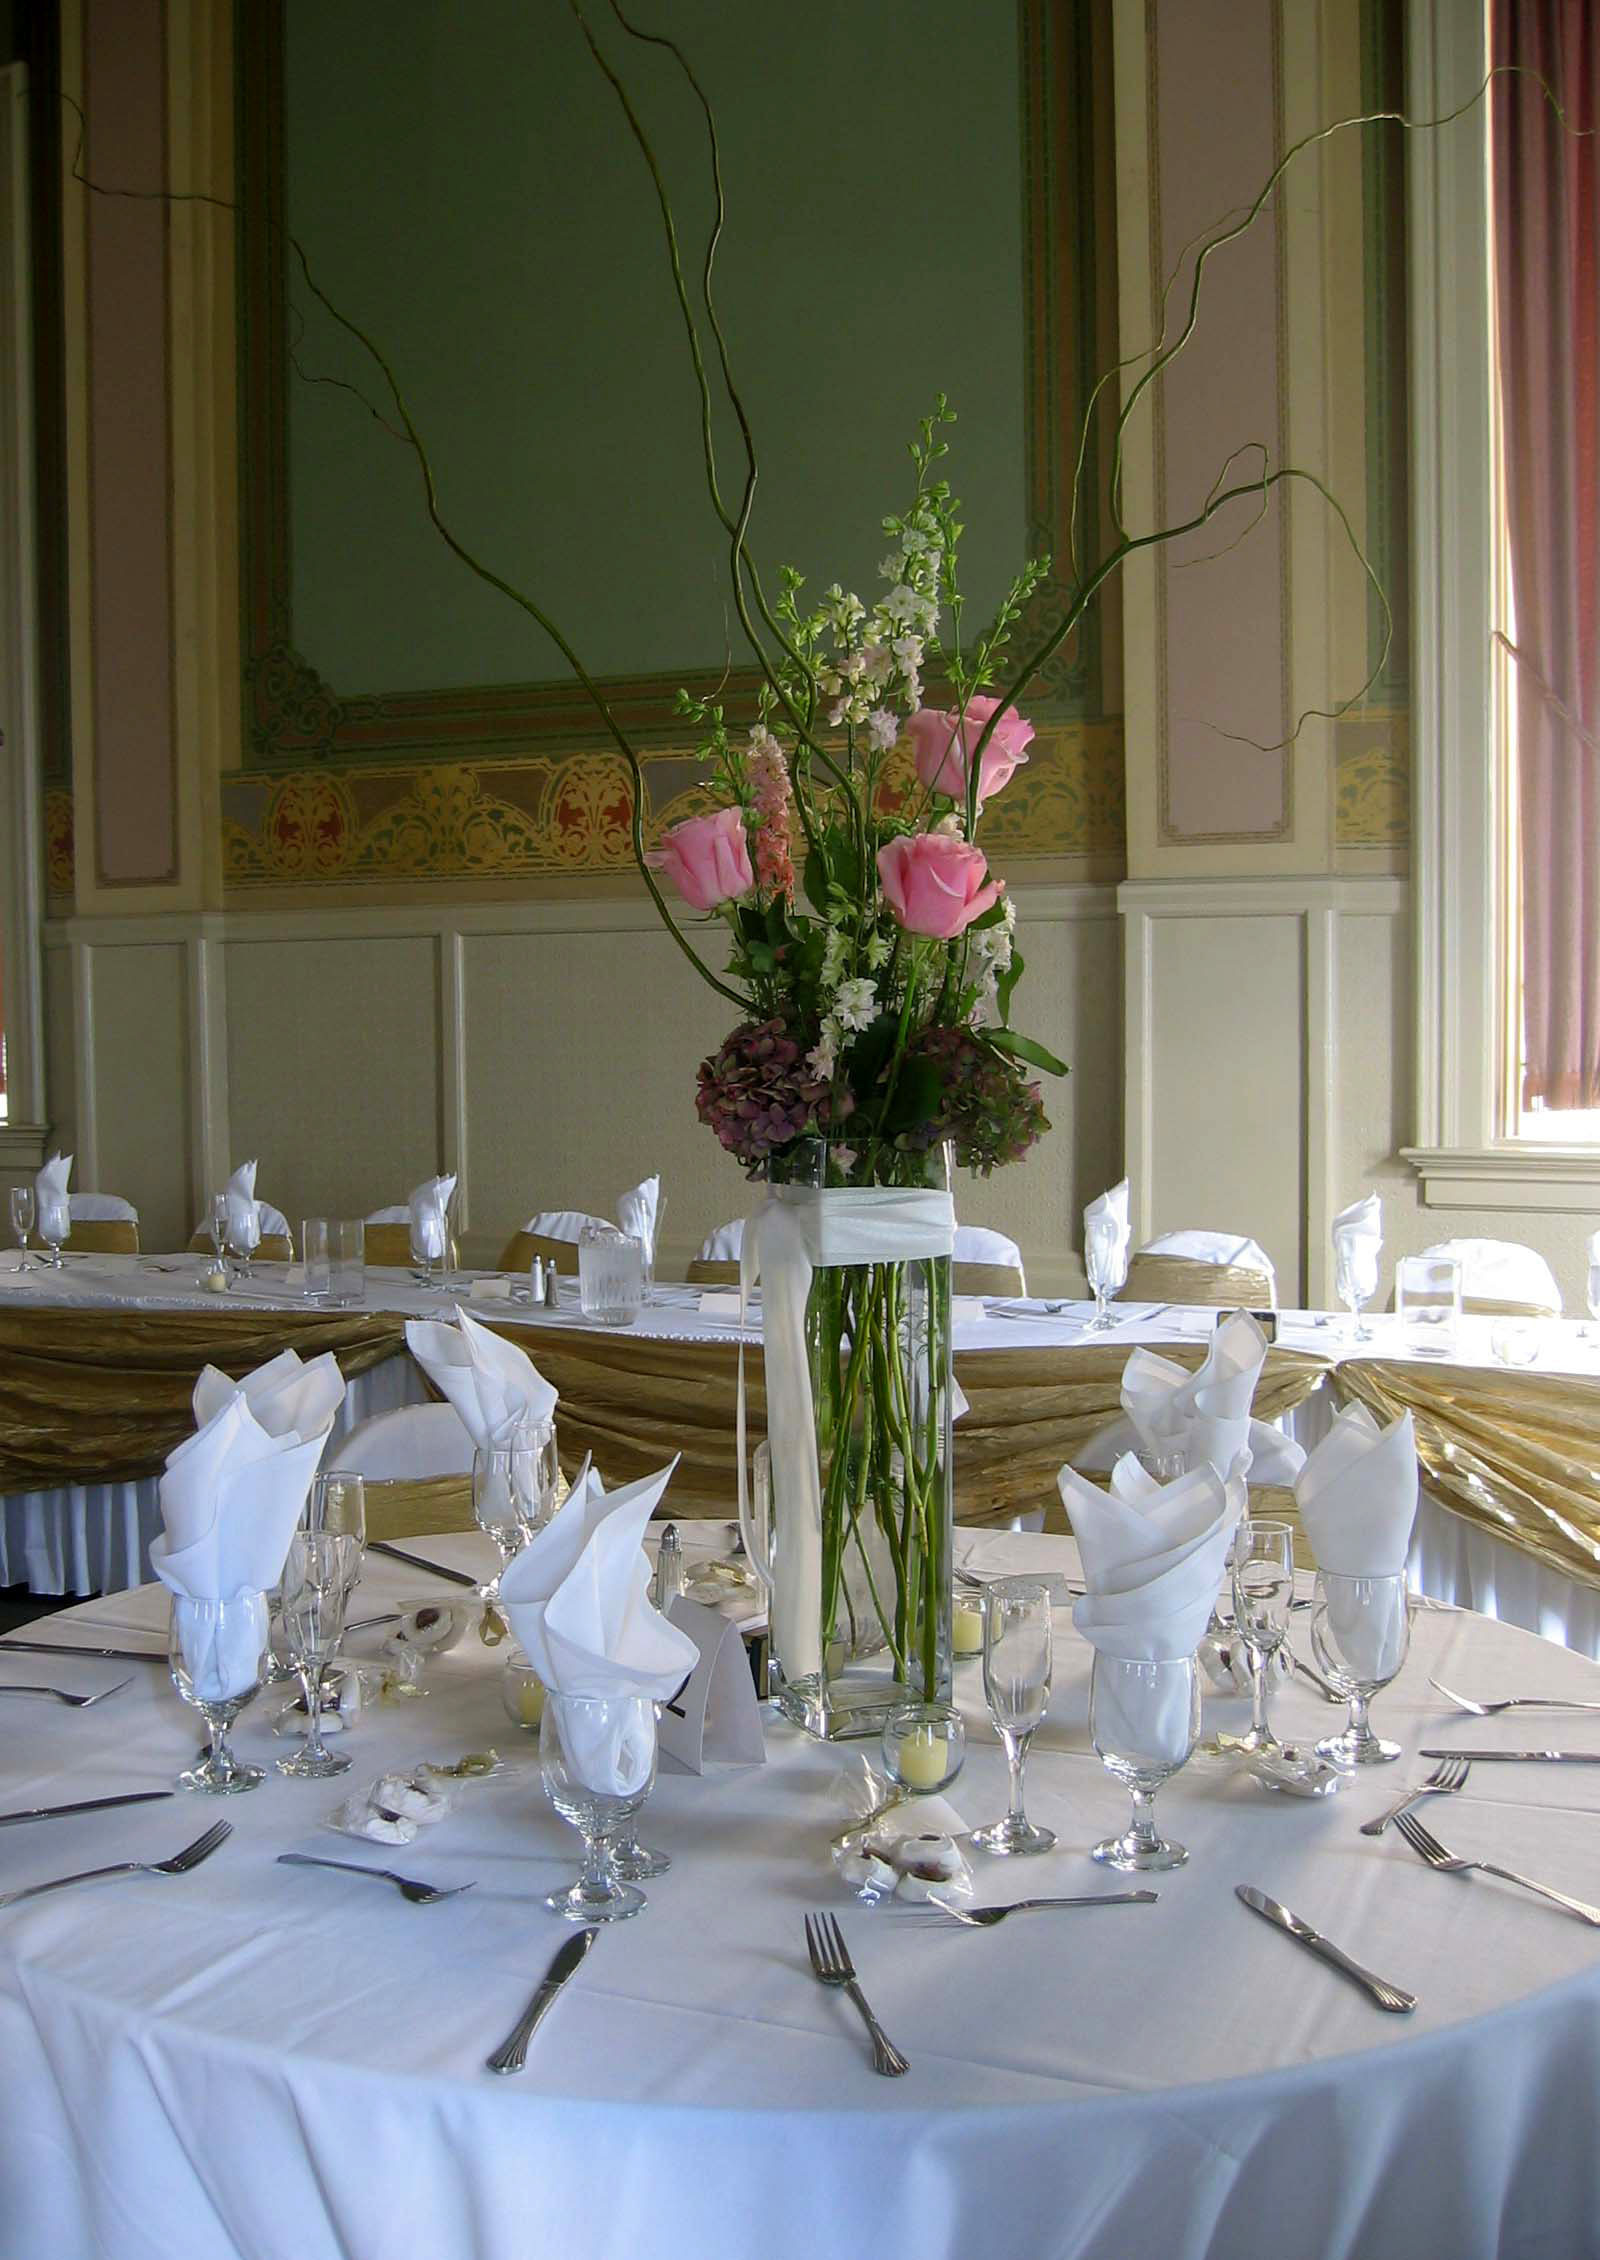 Reception, Flowers & Decor, pink, Centerpieces, Roses, Centerpiece, Hydrangea, An impressive event